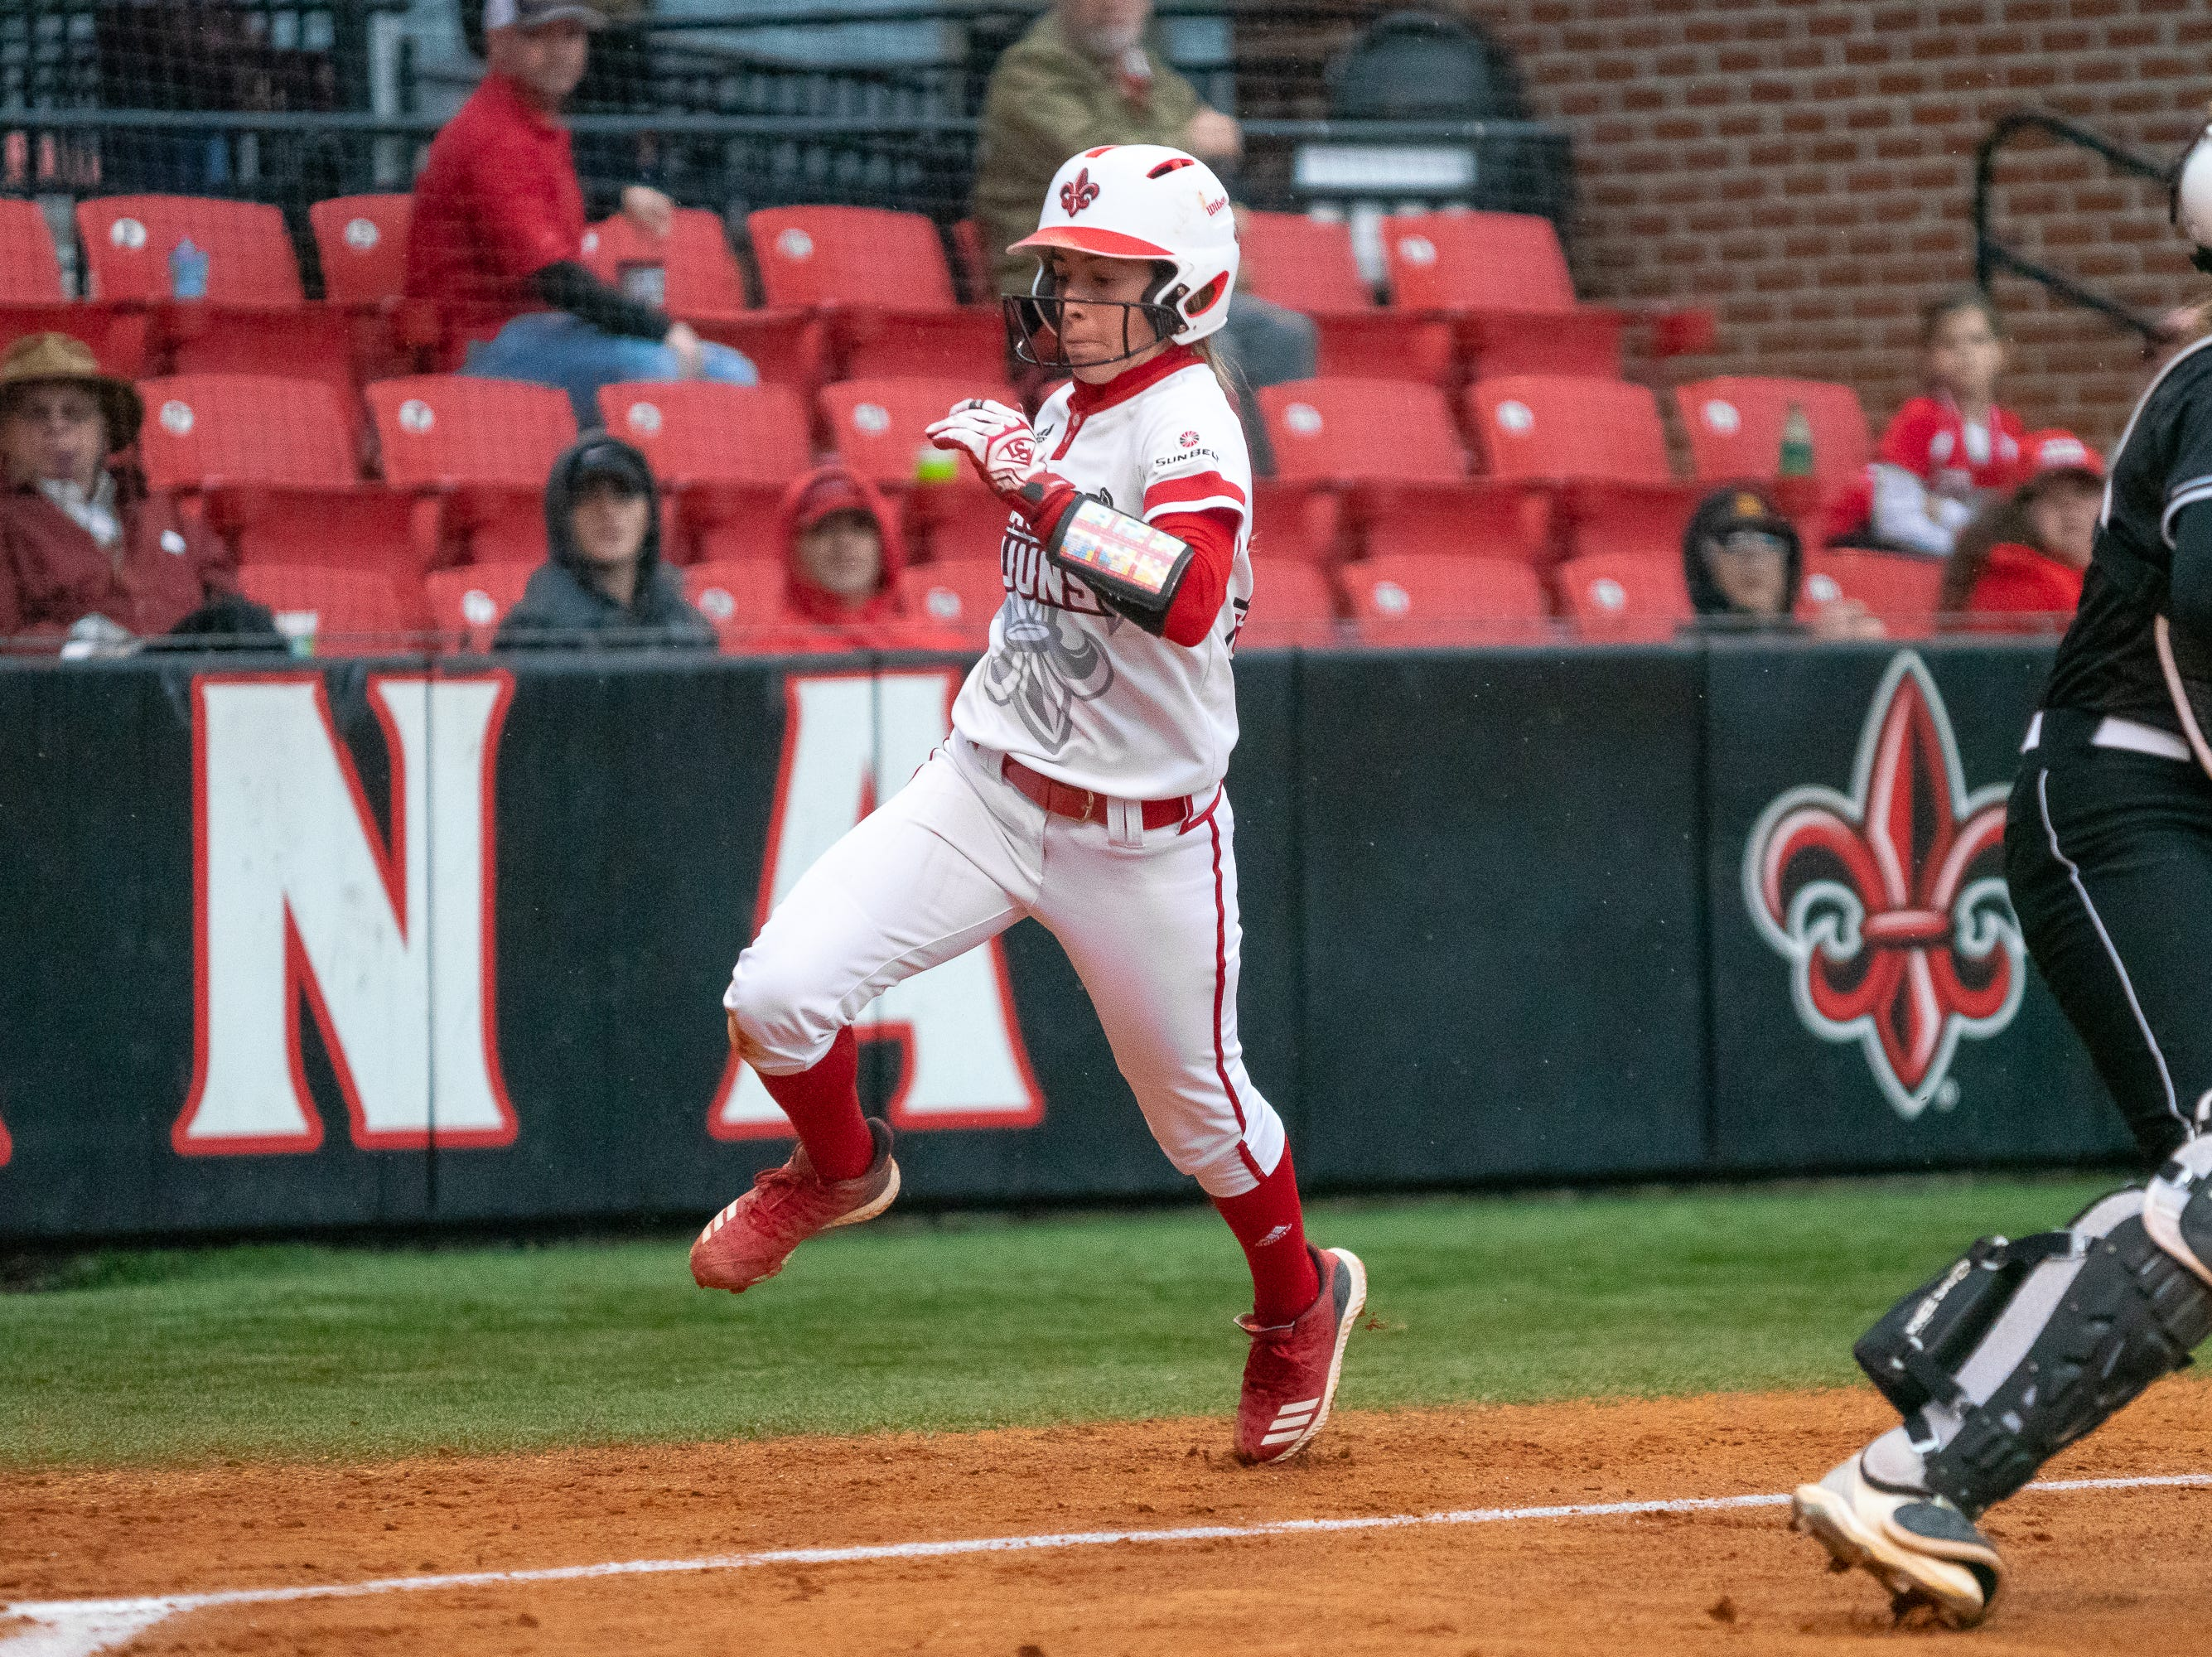 UL's Kara Gremillion runs behind the catcher to score a run for her team as the Ragin' Cajuns take on the Troy Trojans at Lamson Park, Yvette Girouard Field on Friday, March 15, 2019.